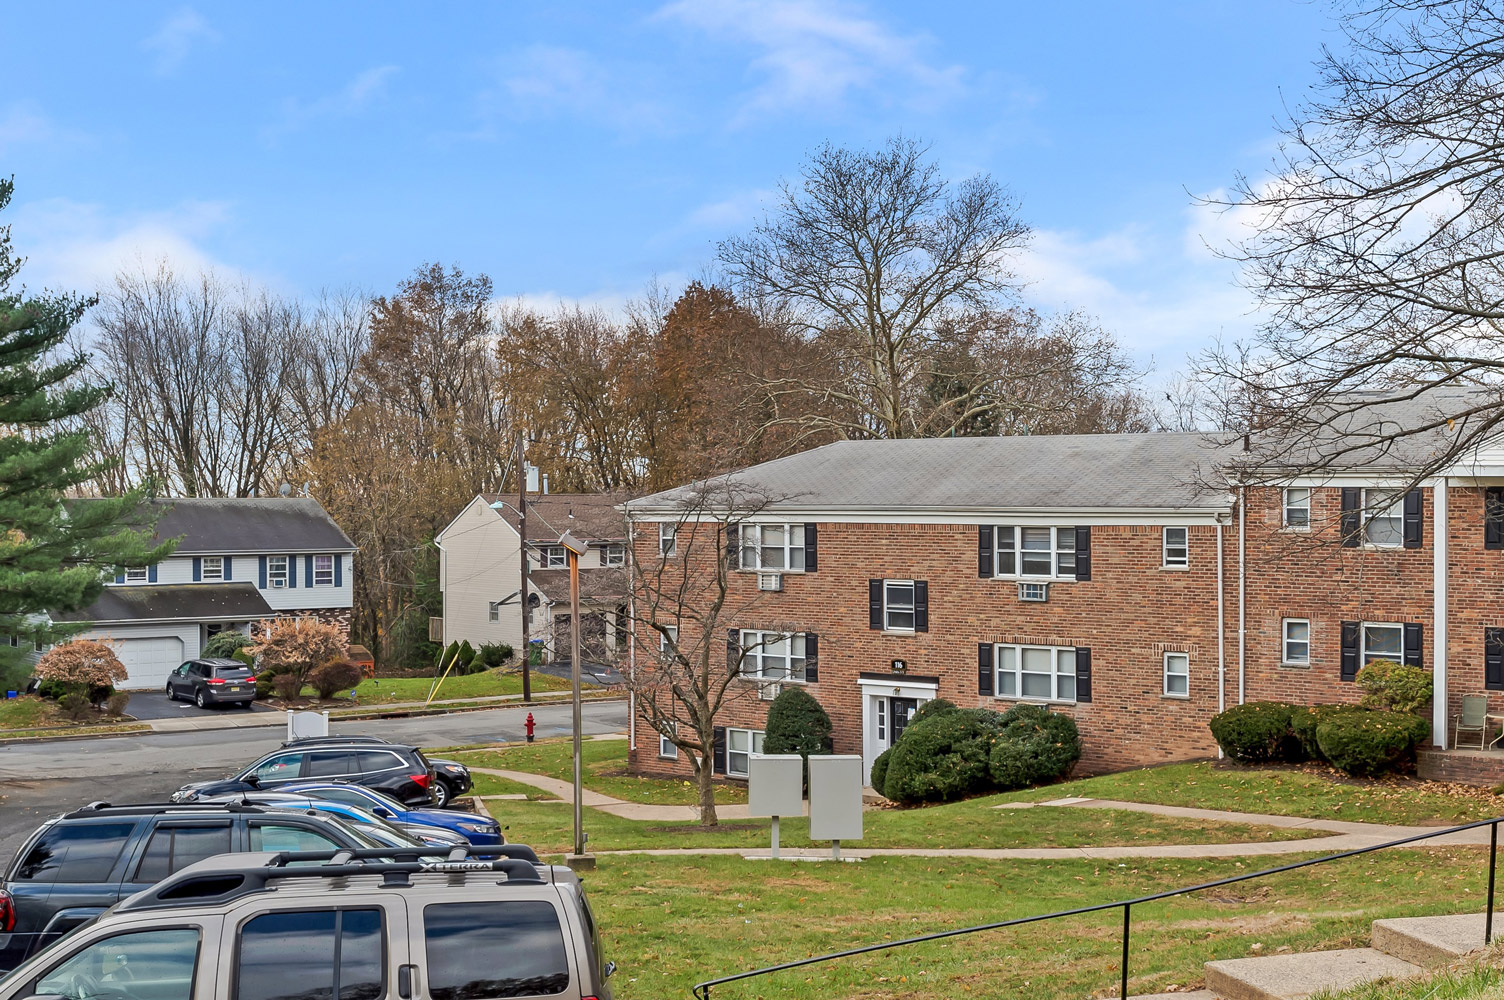 Open Parking at Grandview Gardens Apartments in Edison, New Jersey